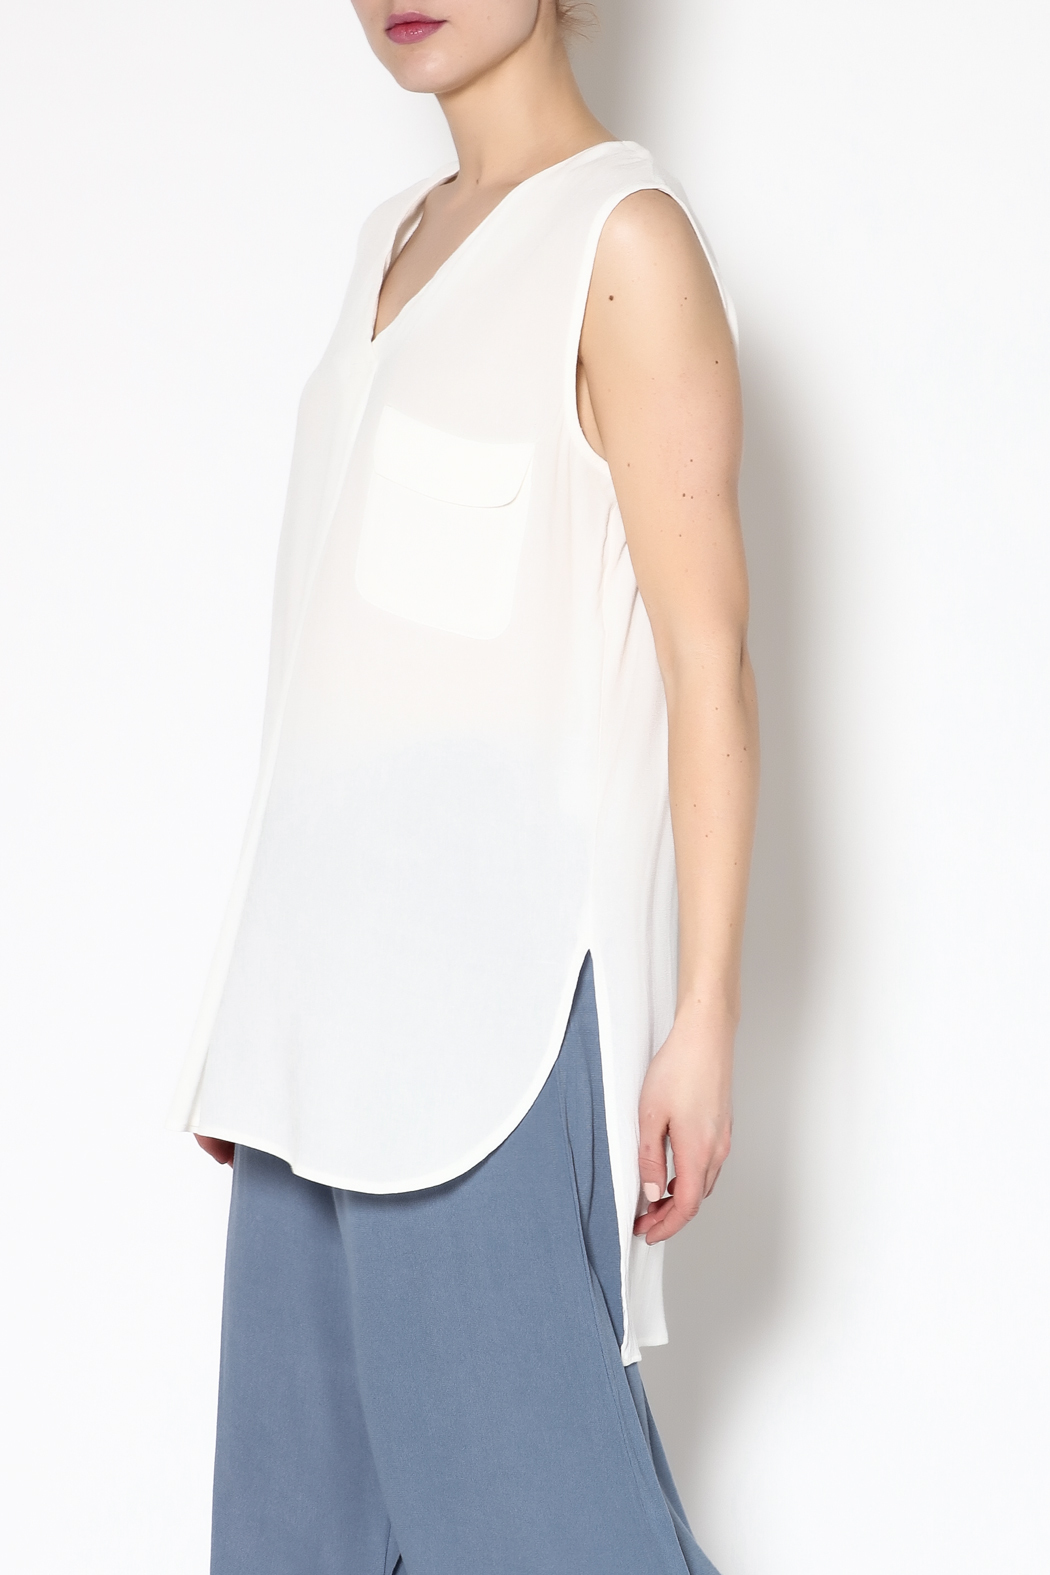 f44f1c64d109 Mustard Seed White Sleeveless Tunic Top from Indiana by Single ...